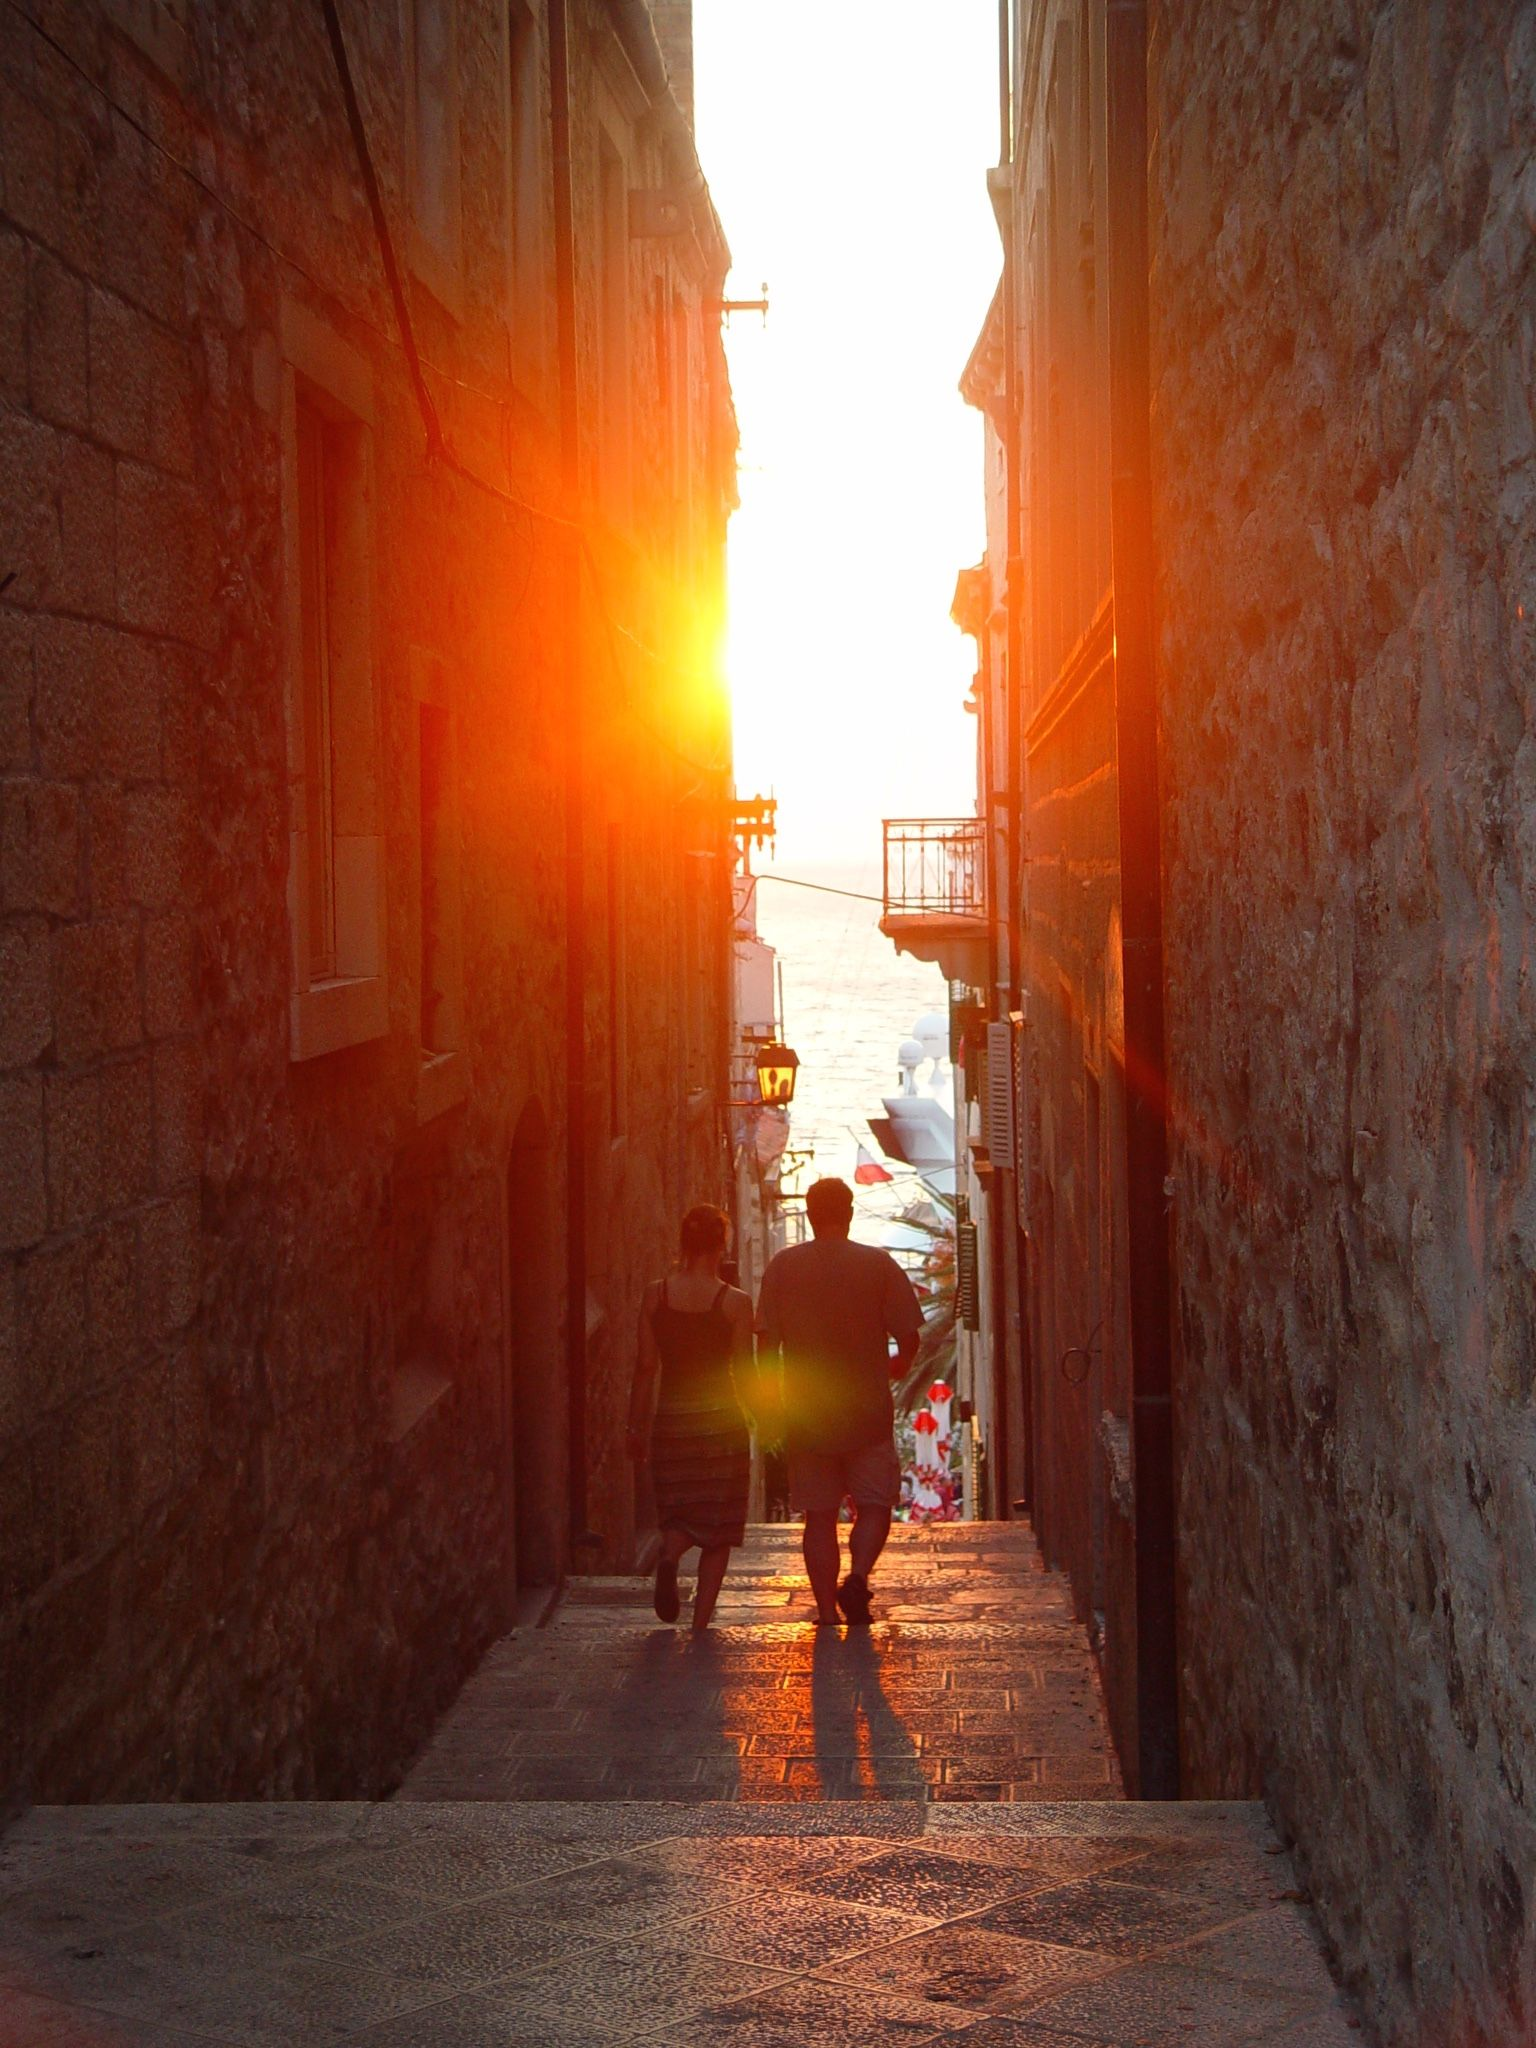 Sunset in the streets of Korcula, Croatia http://www.cityseacountry.com/croatias-top-islands-to-visit/